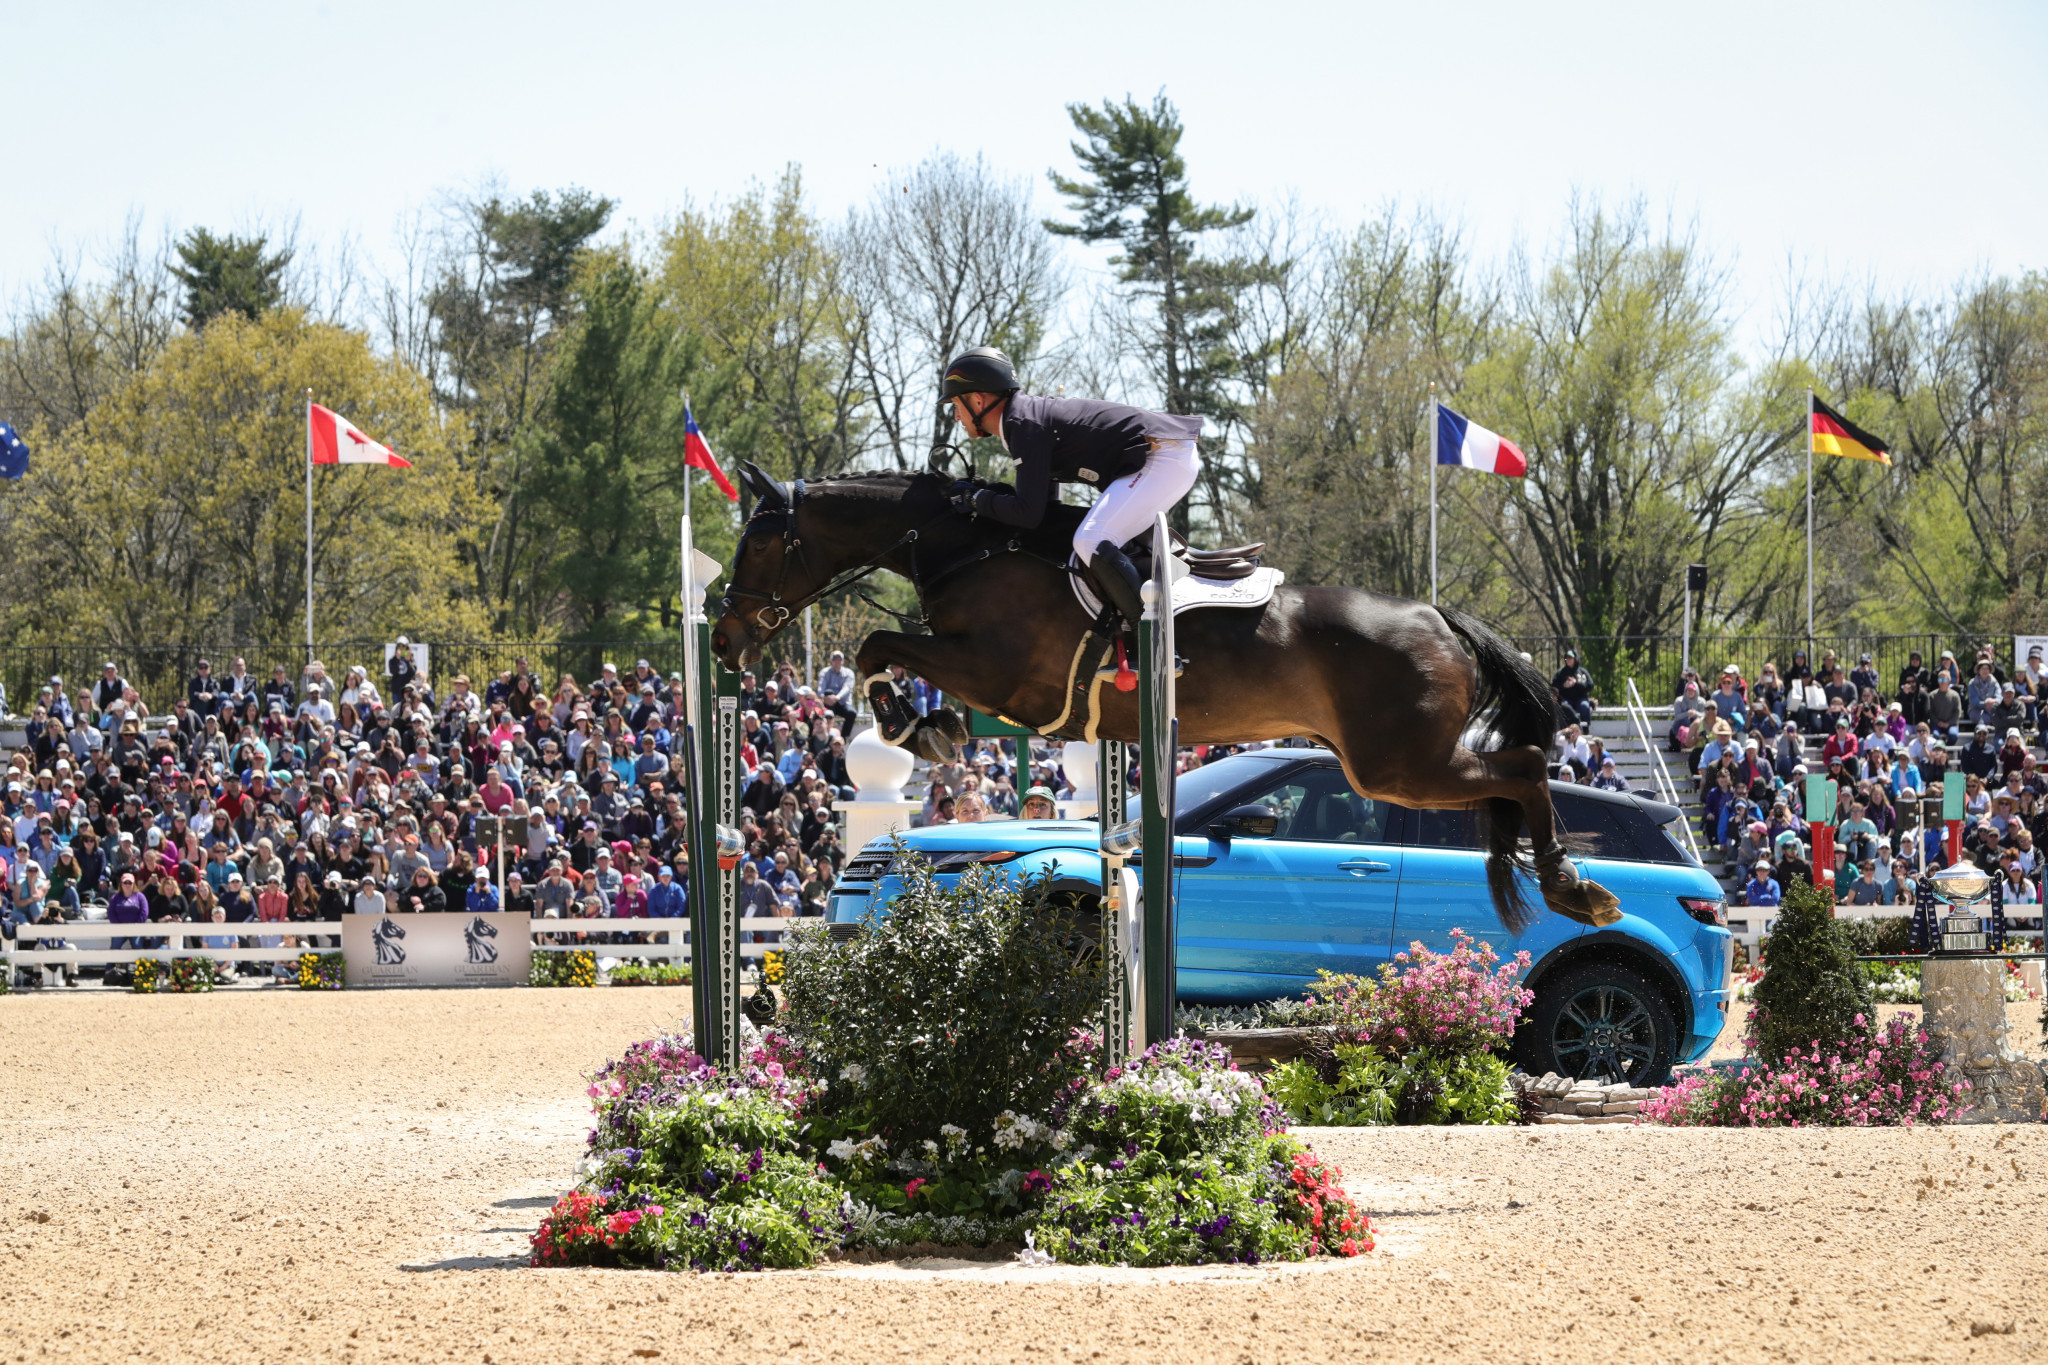 Olympic gold medallist Jung among entrants at Longines Global Champions Tour event in Berlin